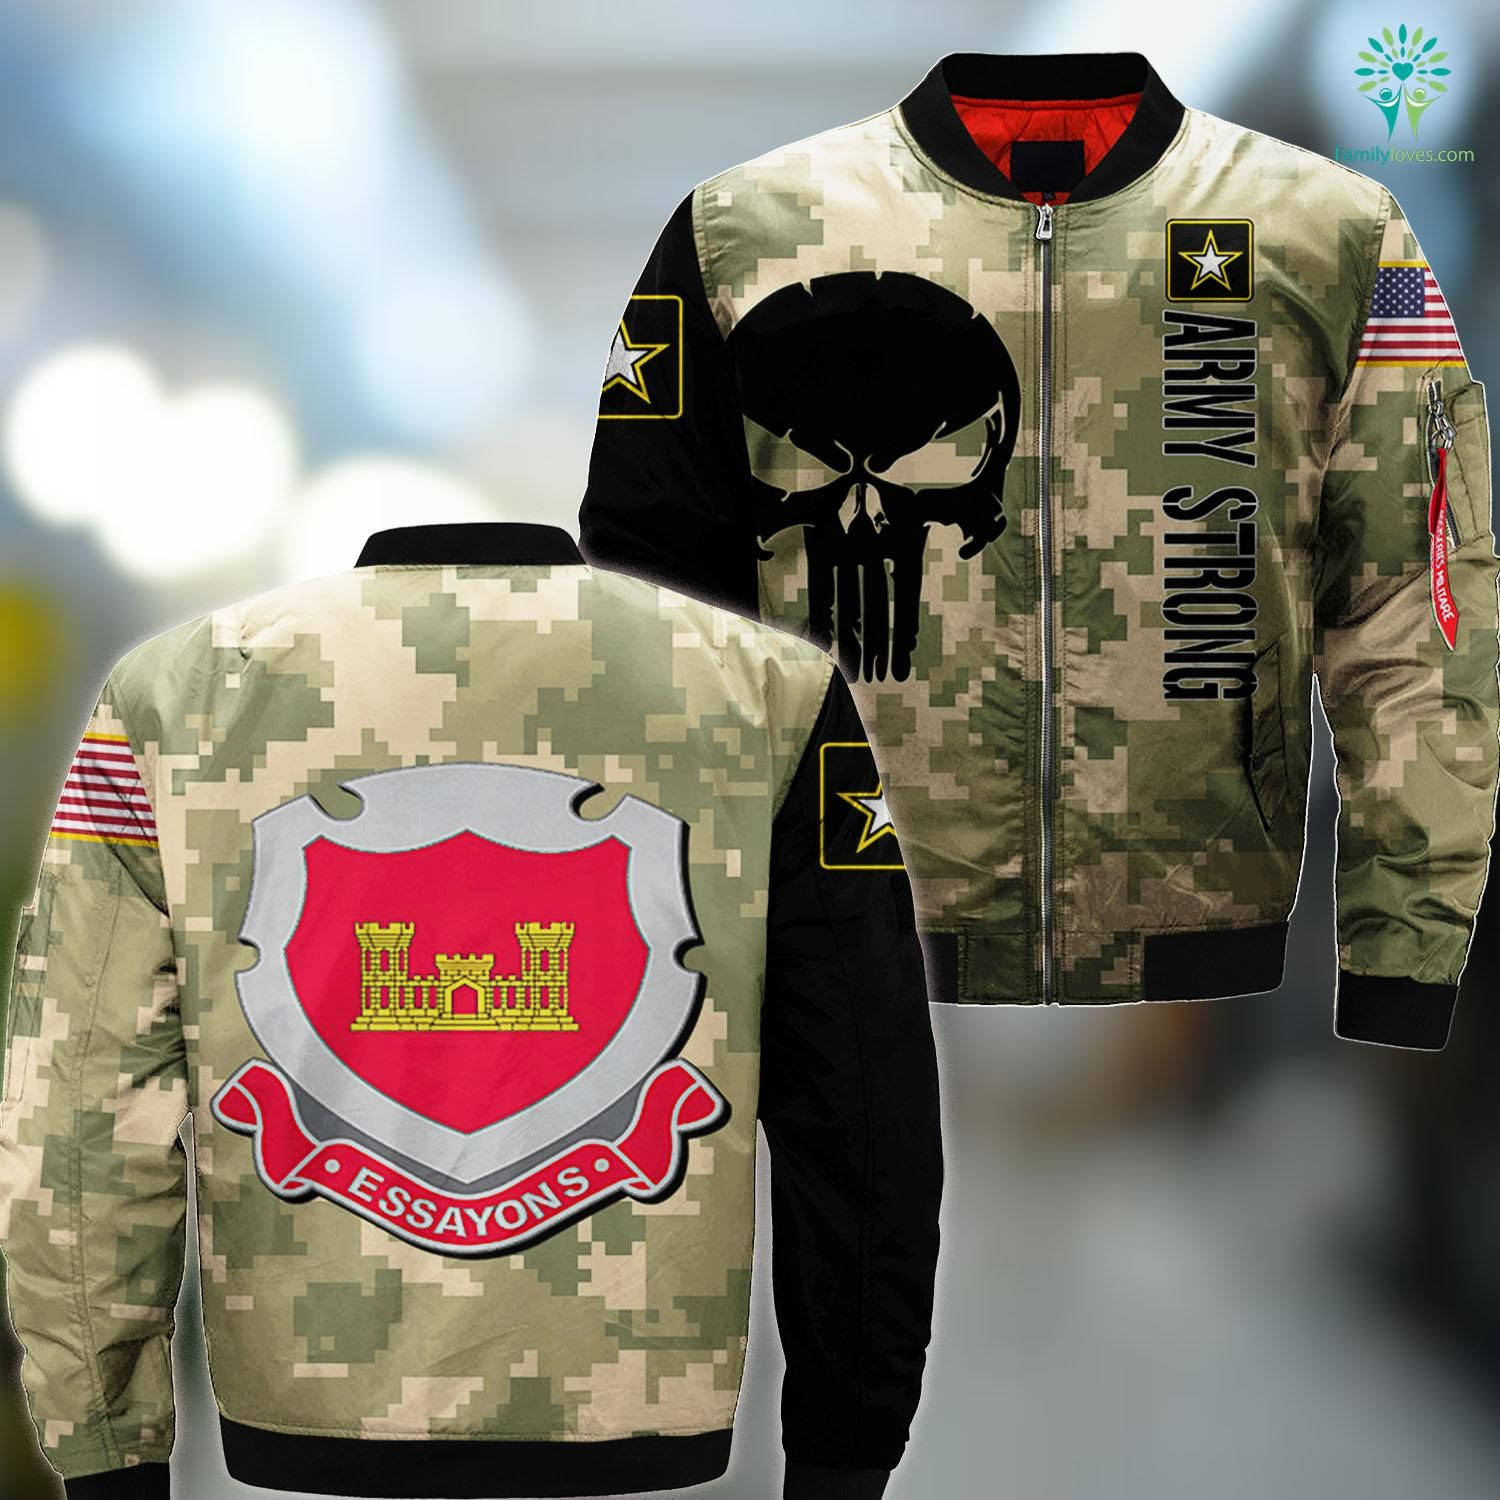 Us Army Badges Army Corps Of Engineers Usace Ma1 Bomber Jacket All Over Print Familyloves Com Us Army Clothing Army Bomber Jacket Army Shirts [ 1500 x 1500 Pixel ]